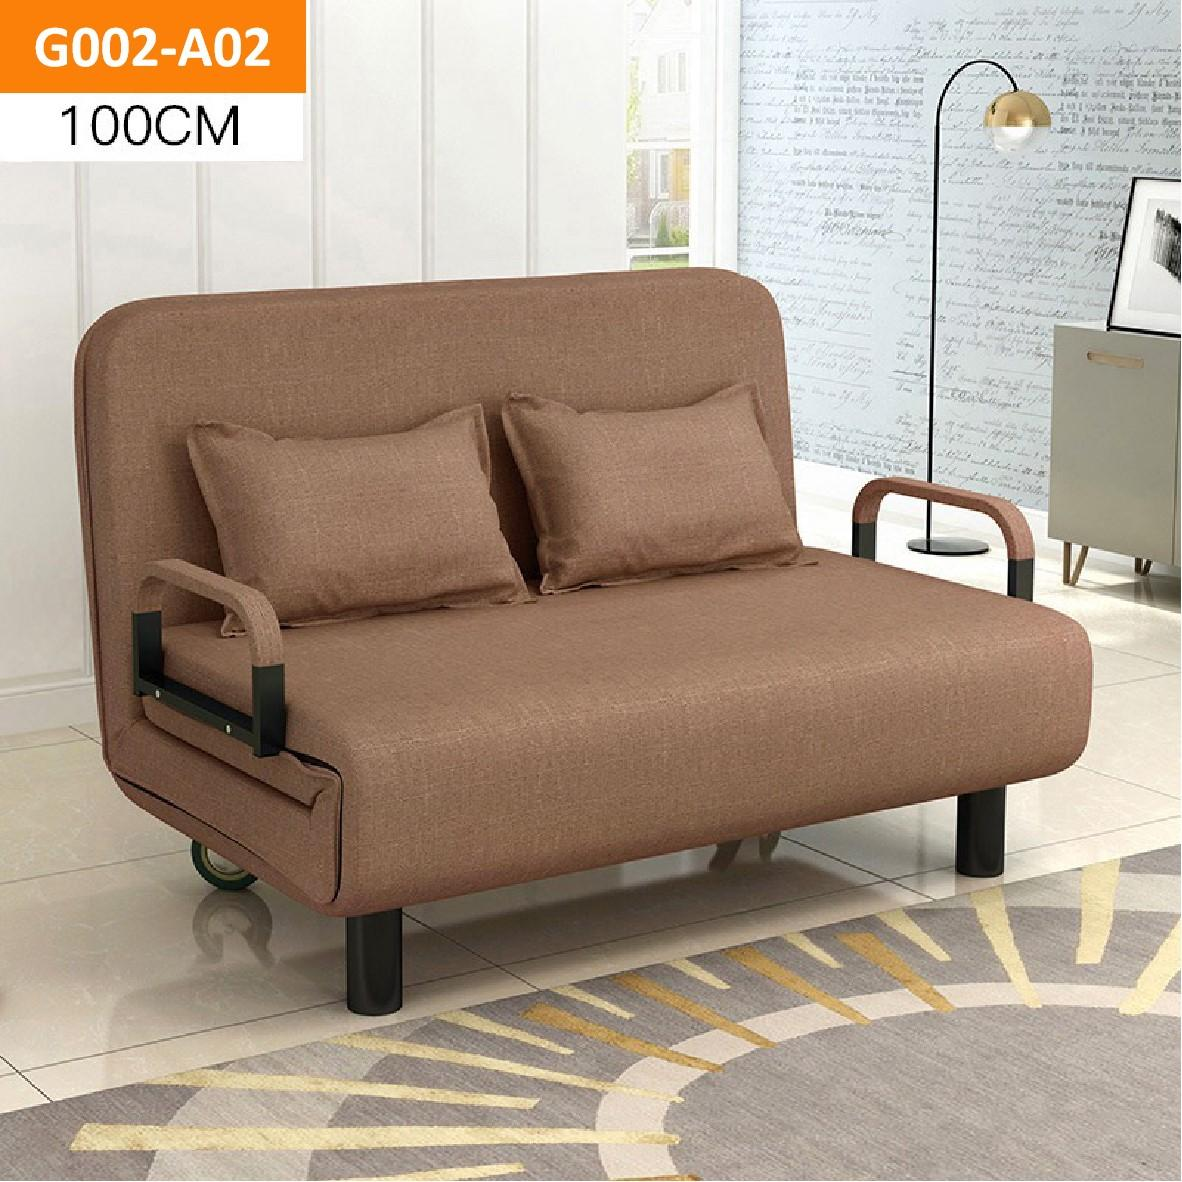 Foldable sofa bed/Sofa/Bed